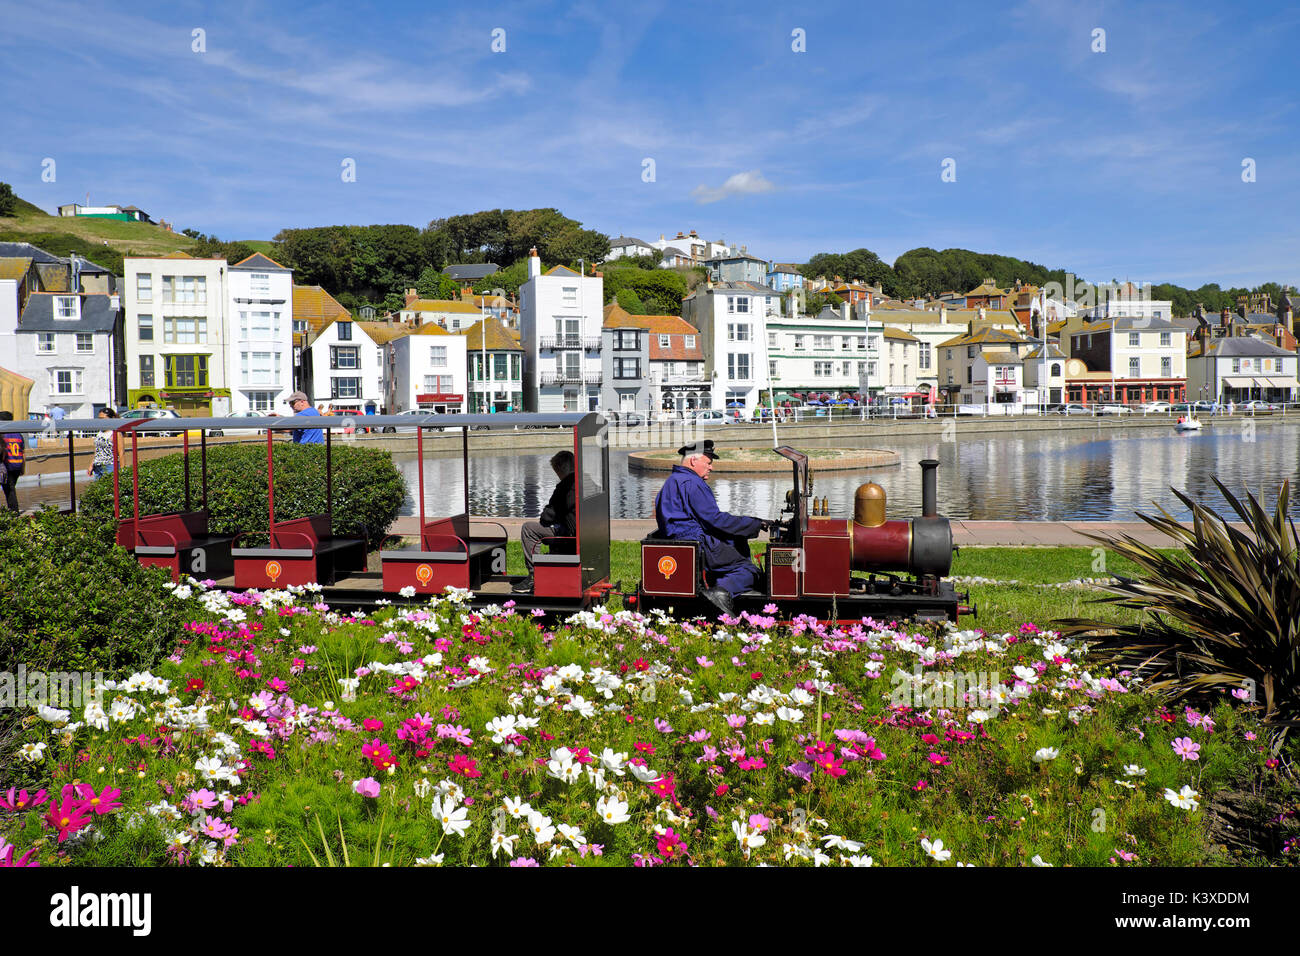 Hastings, UK. Miniature train on the seafront railway, on the promenade by the boating lake. Hastings Old Town seafront, - Stock Image